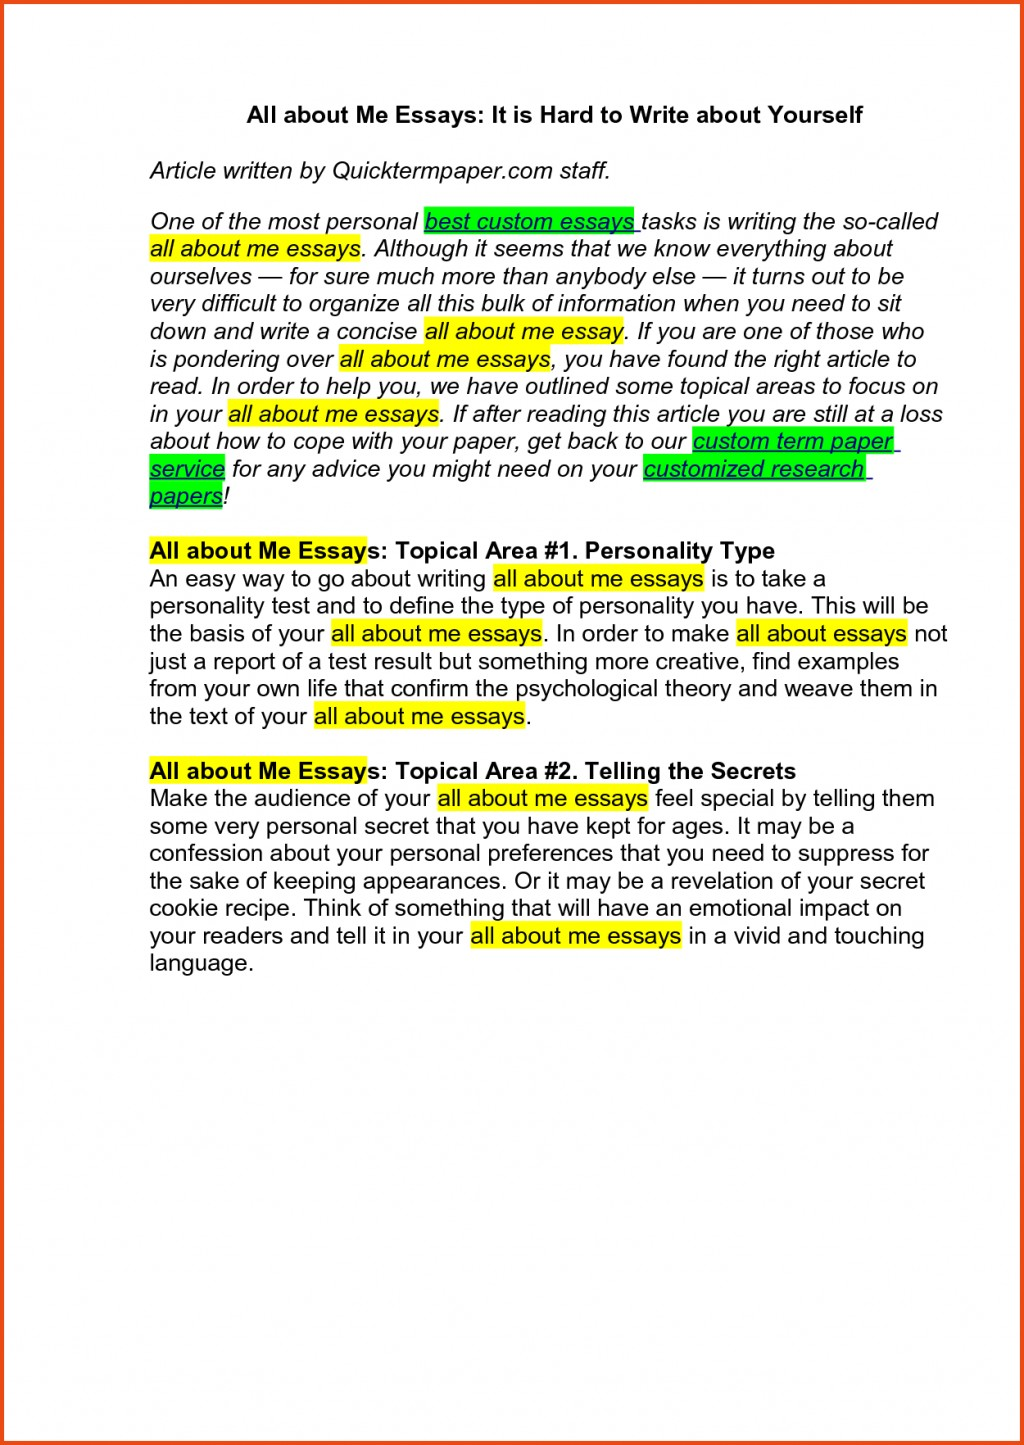 010 Sample College Admissions Essay Good Mba Essays School Application How To Start Your Confortable Resume About Yourselfs In Admis Write Off Strong App Steps Successful Formidable Yourself Example Of Autobiography Tagalog A Narrative Examples Introduction Large